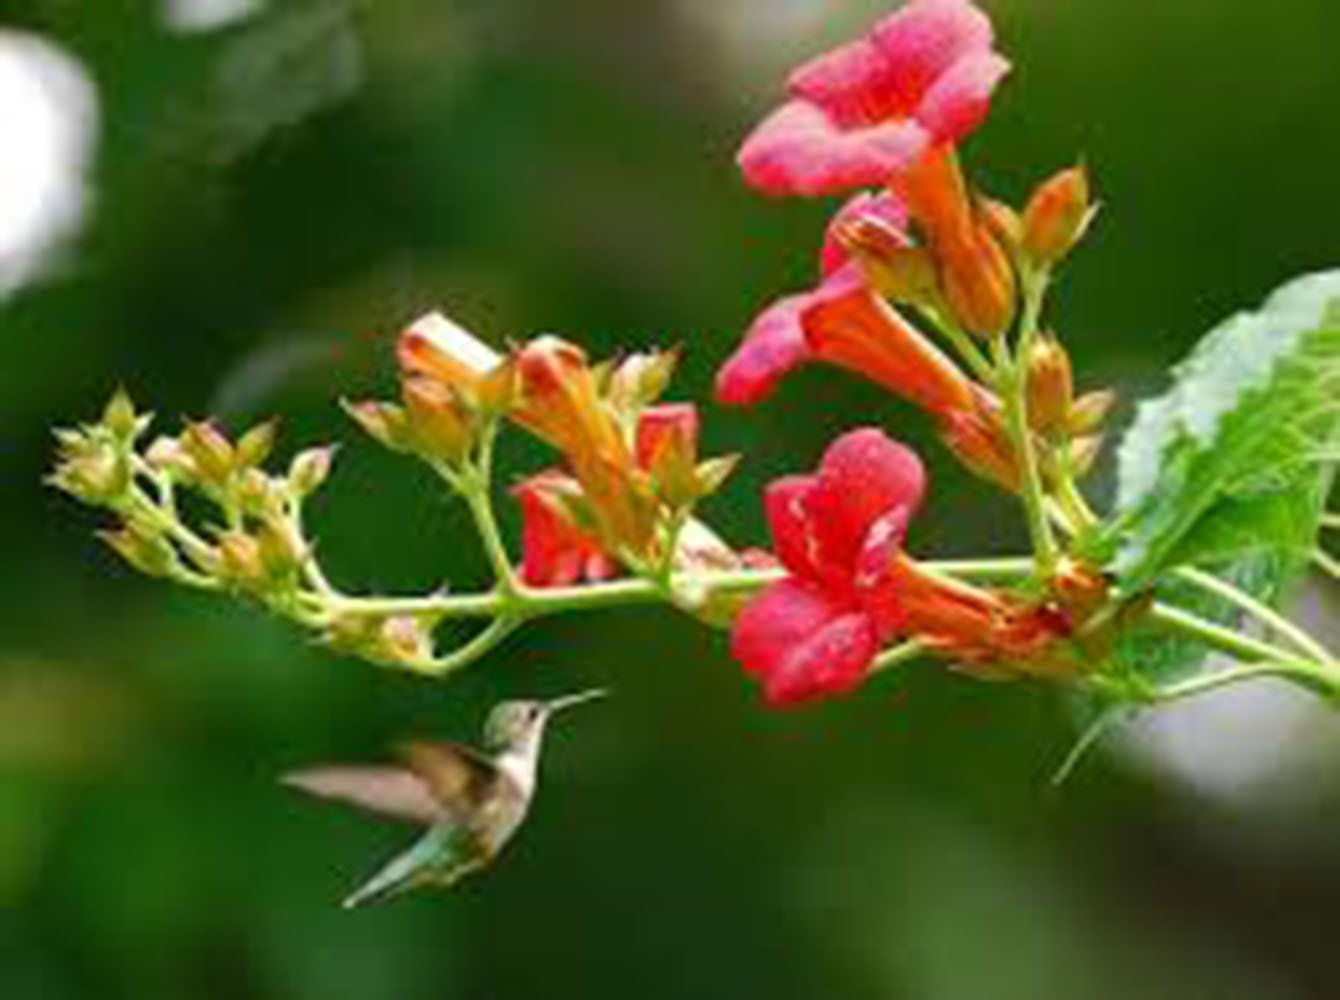 Trumpet Vine Creeper, Trumpet Flower, Campsis radican, (6) 16''-24'', Orange Flower, Orange Flowers, Vine, Vines, Hummingbird Vine, Hummingbird Flowers, Trumpet Vine Flower, Live Plants, Plant by Organic Heirloom Plants (Image #7)